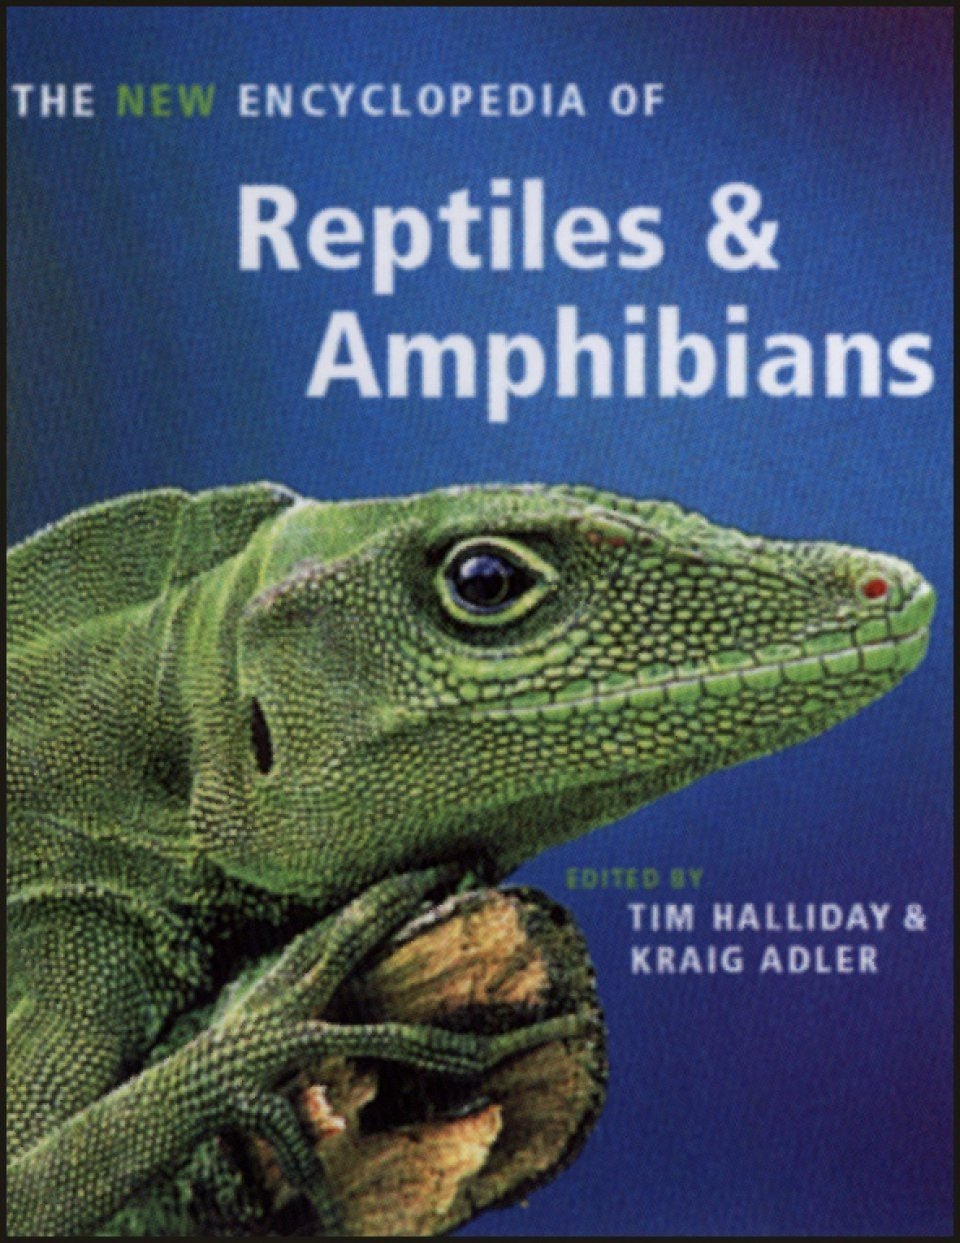 The New Encyclopedia of Reptiles and Amphibians